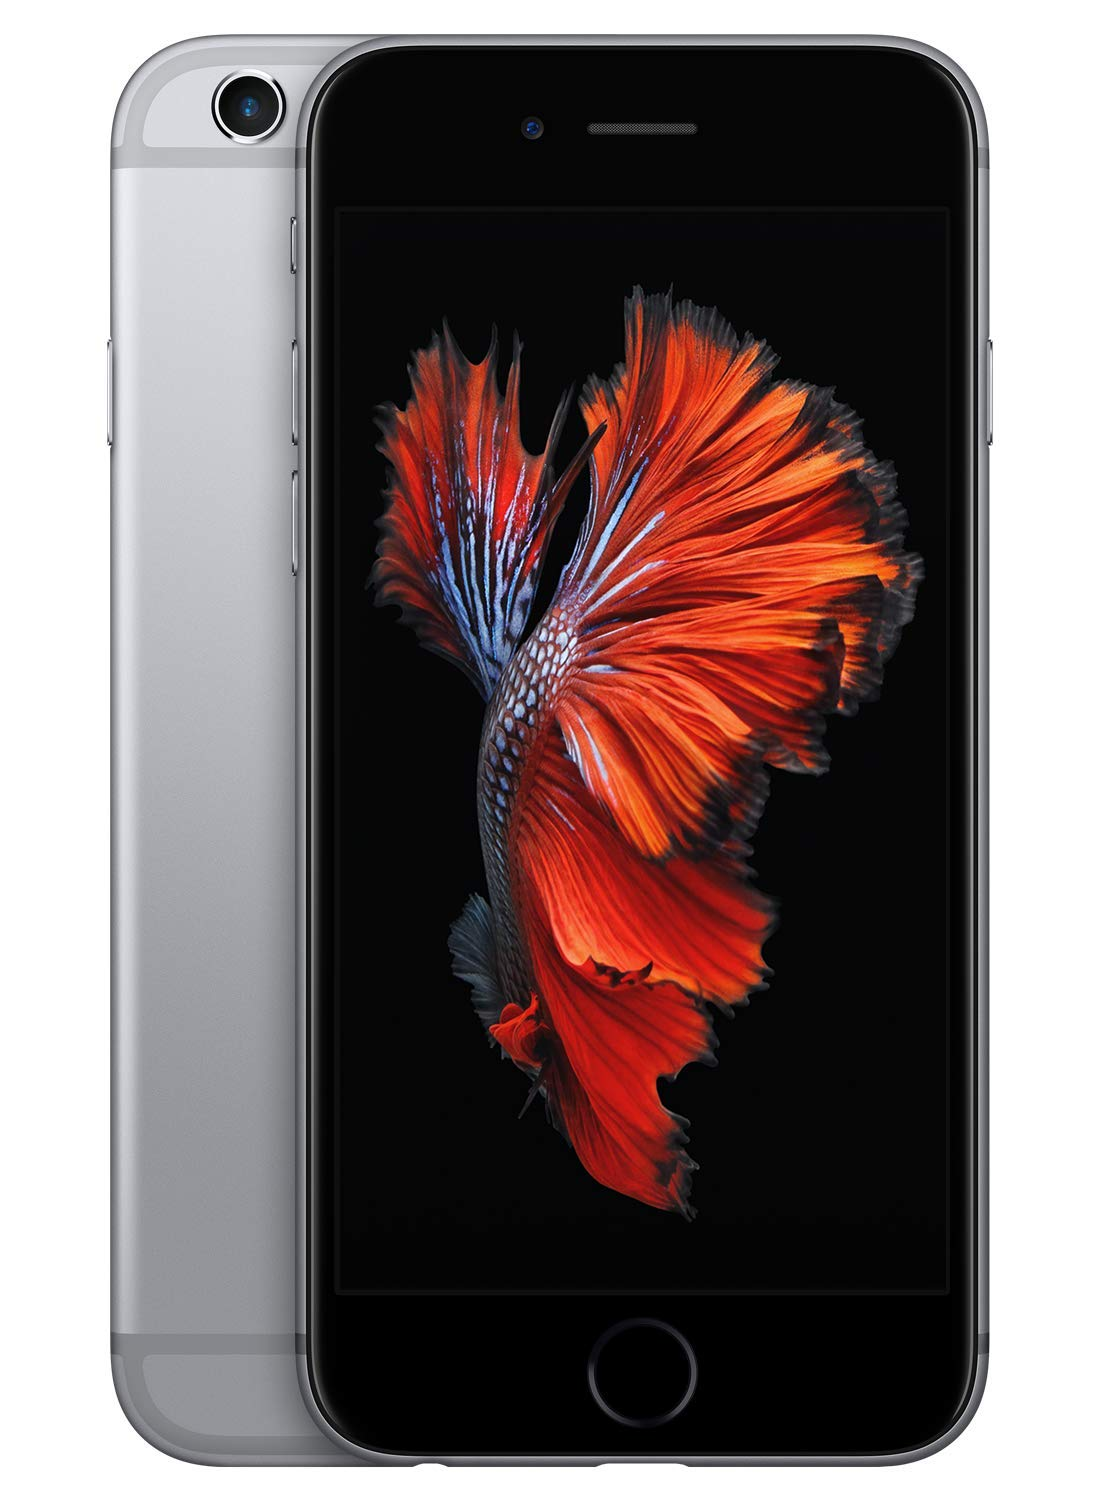 Simple Mobile Prepaid - Apple iPhone 6s (32GB) - Space Gray by Apple